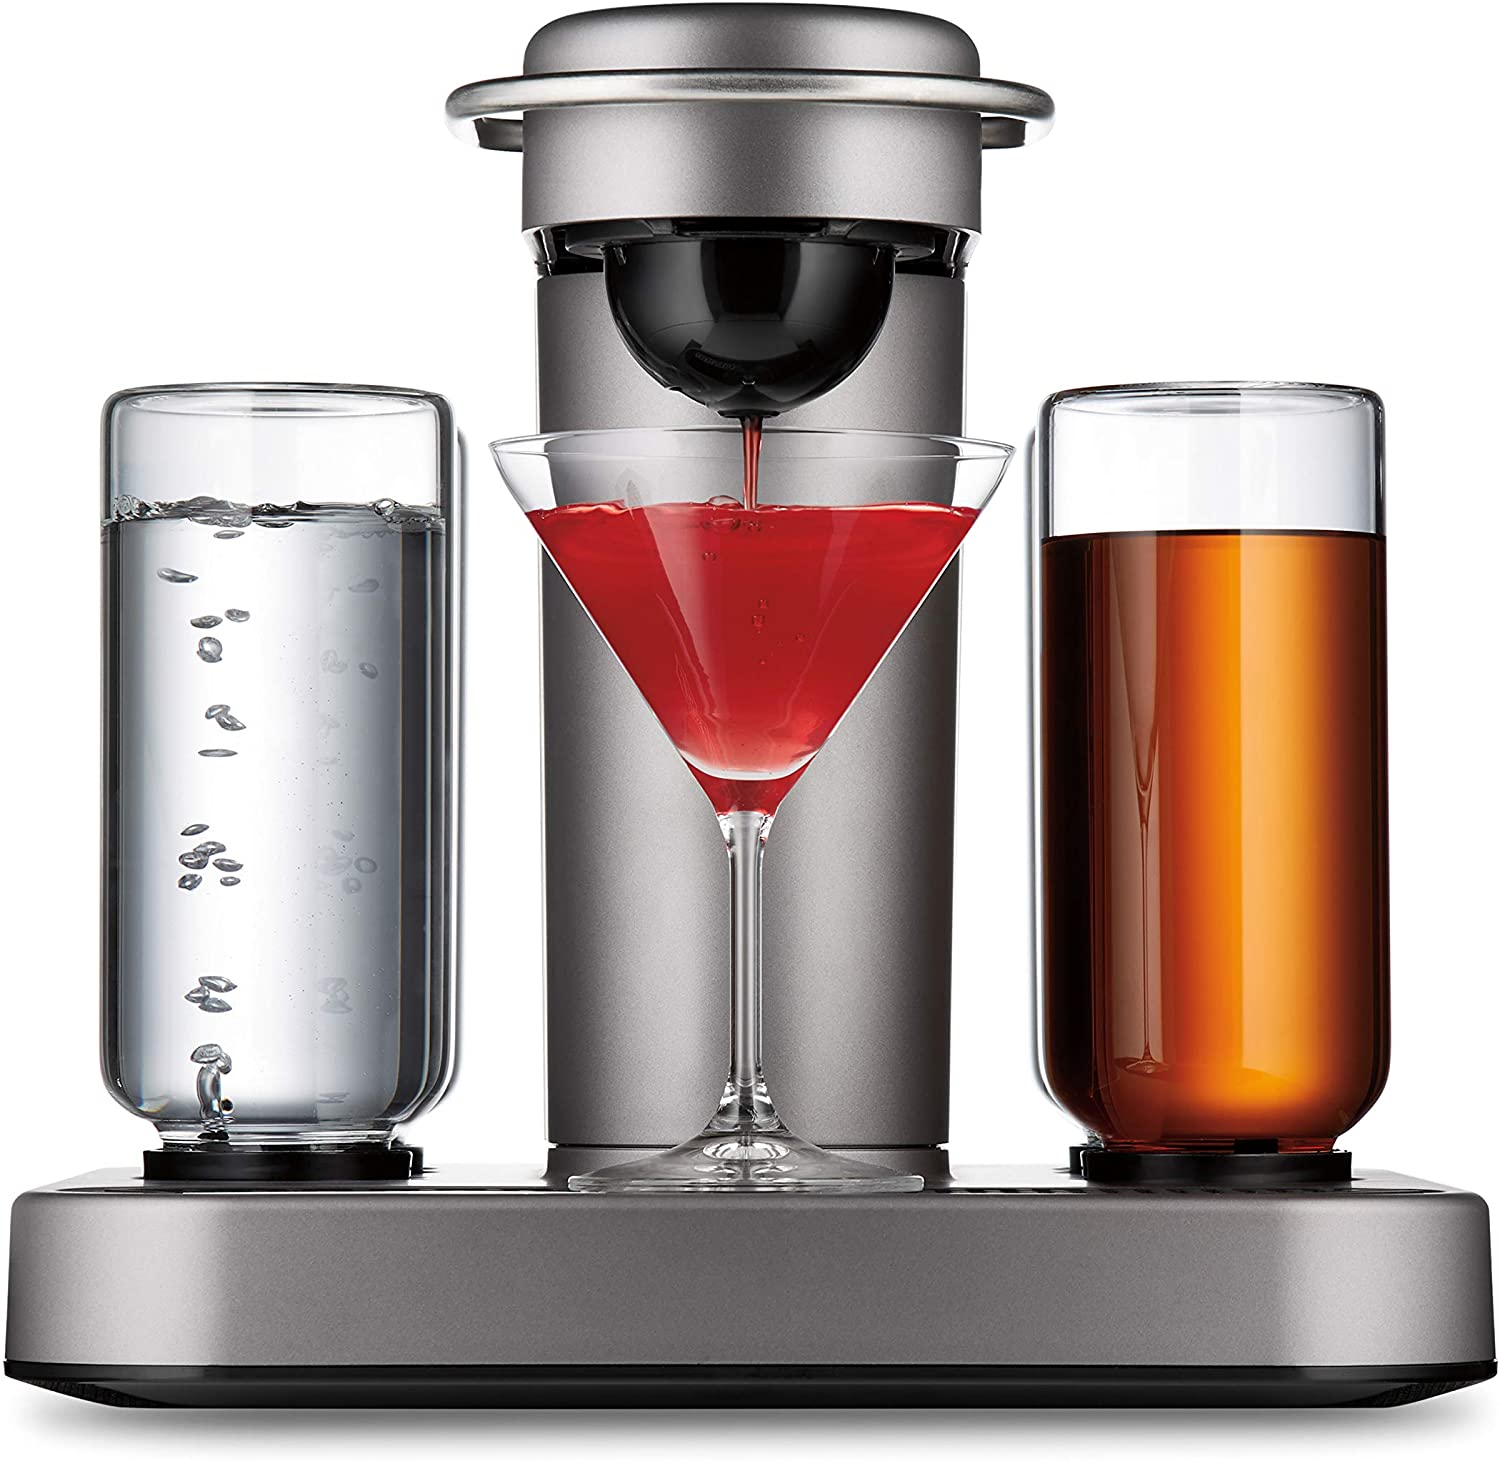 Review of Bartesian Premium Cocktail and Margarita Machine for the Home Bar (55300)